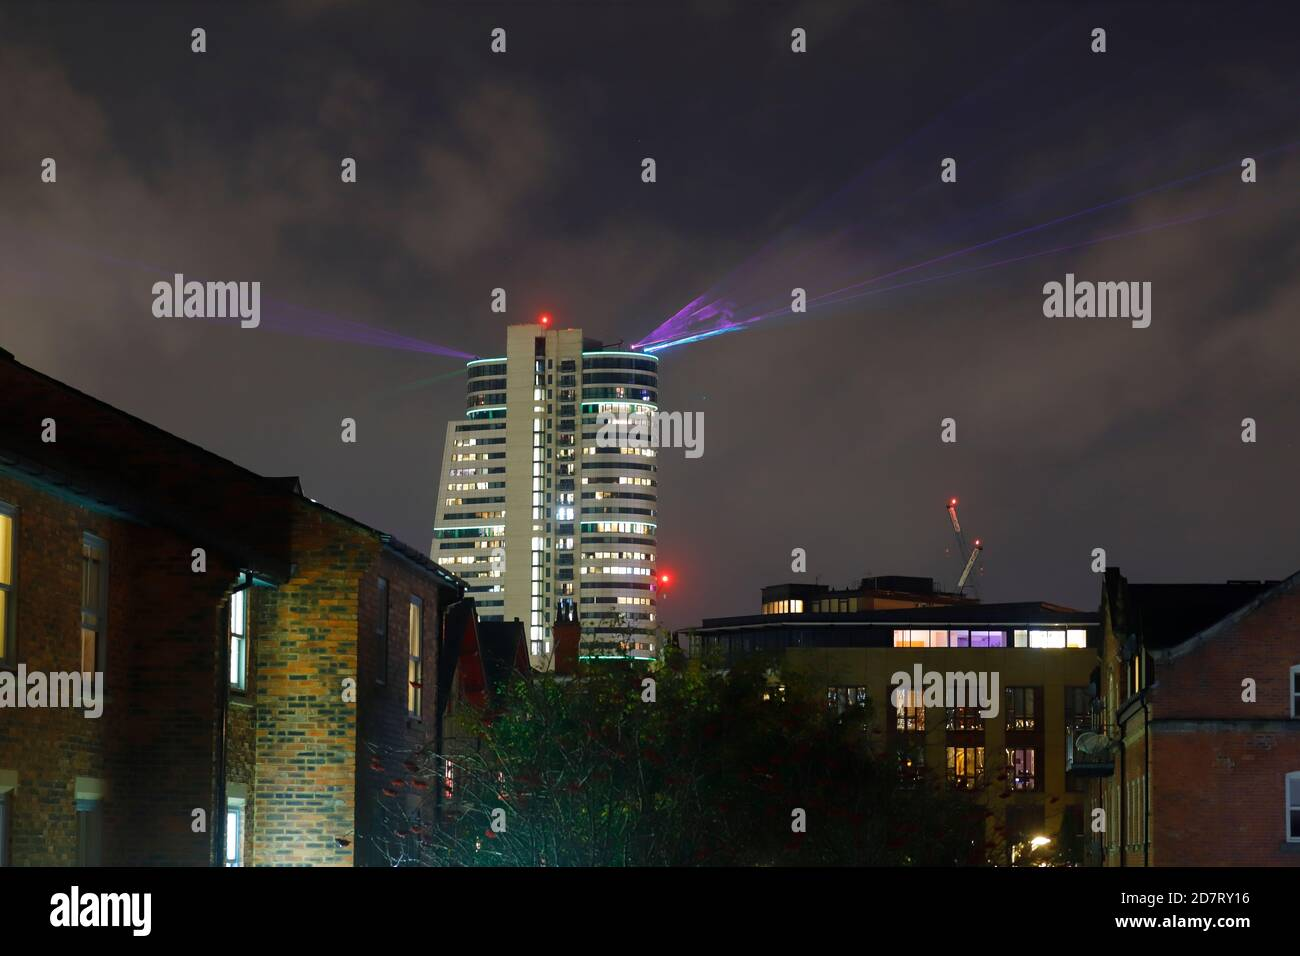 Interactive laser show in the skies above Leeds City during Laser Light City event. Stock Photo